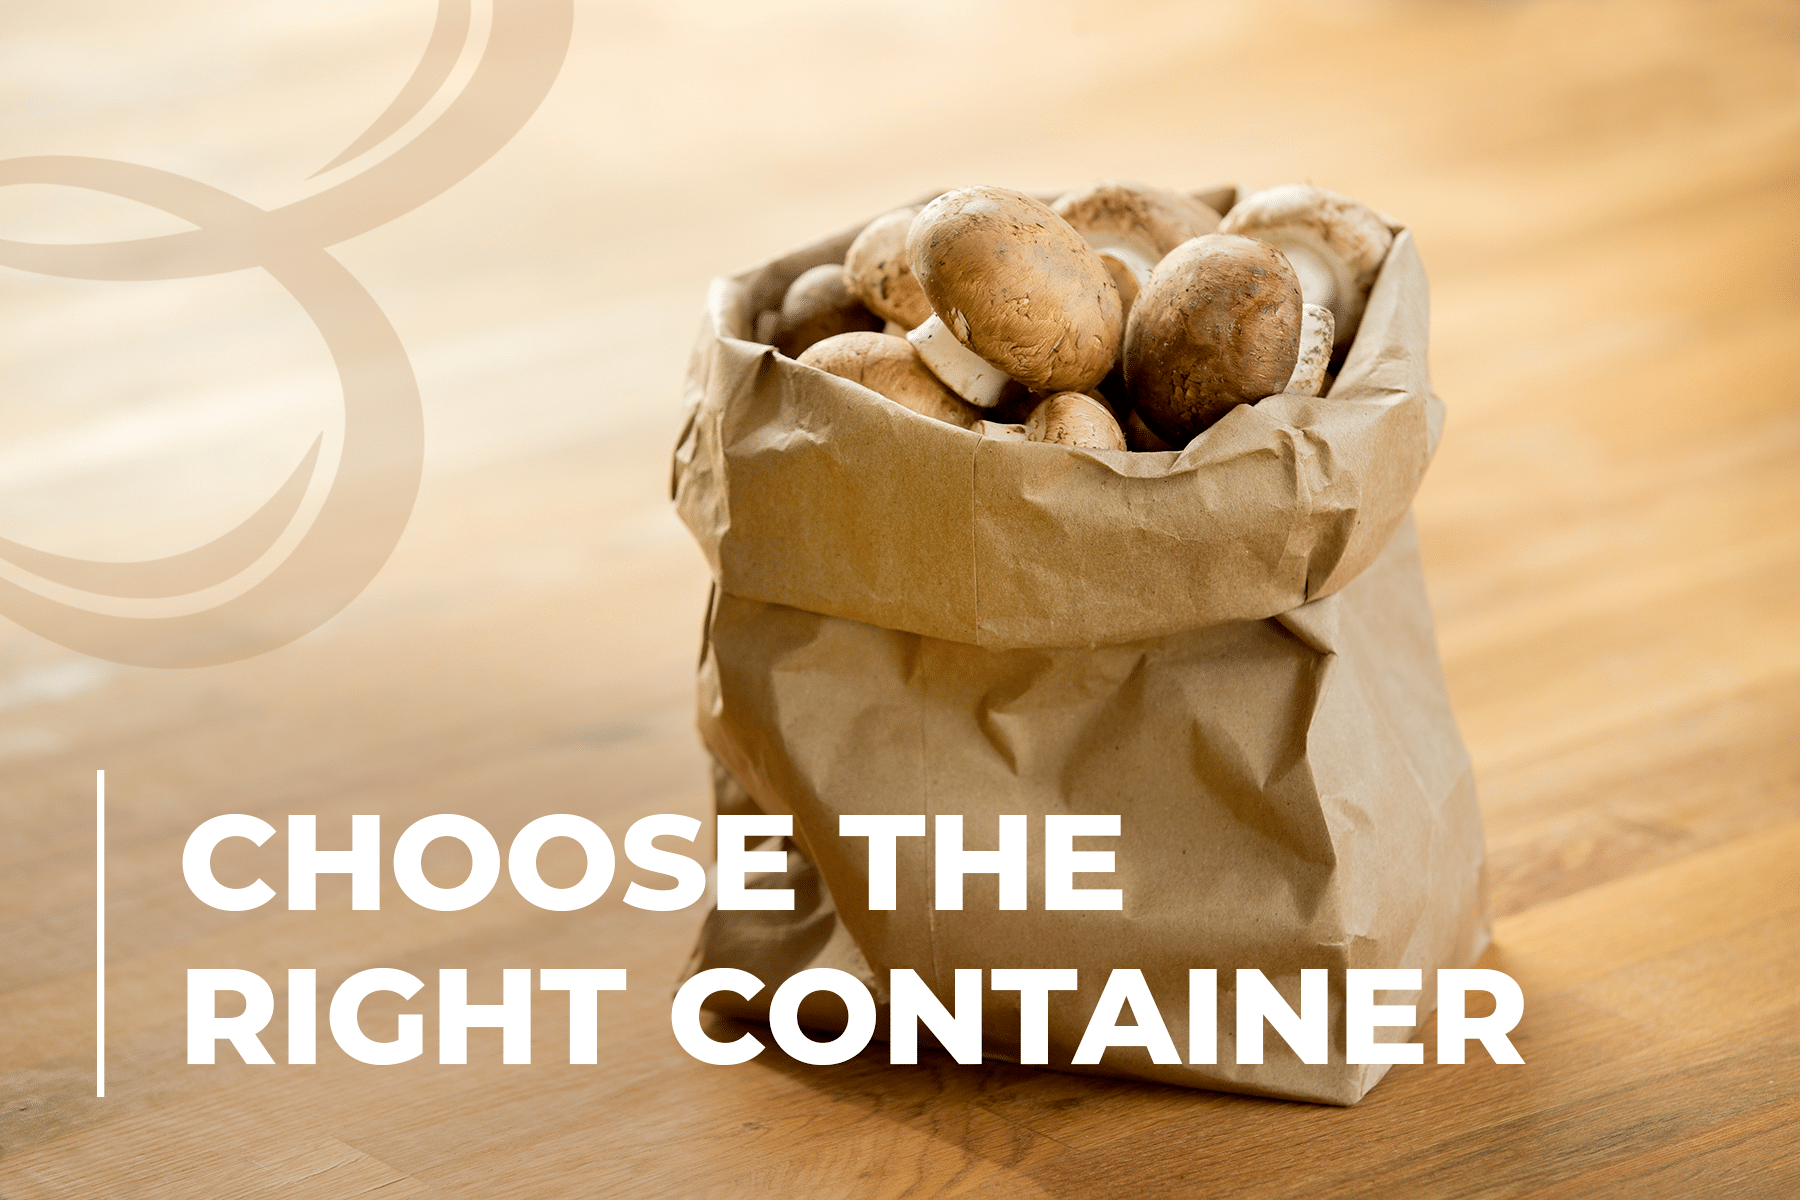 Choose the right container